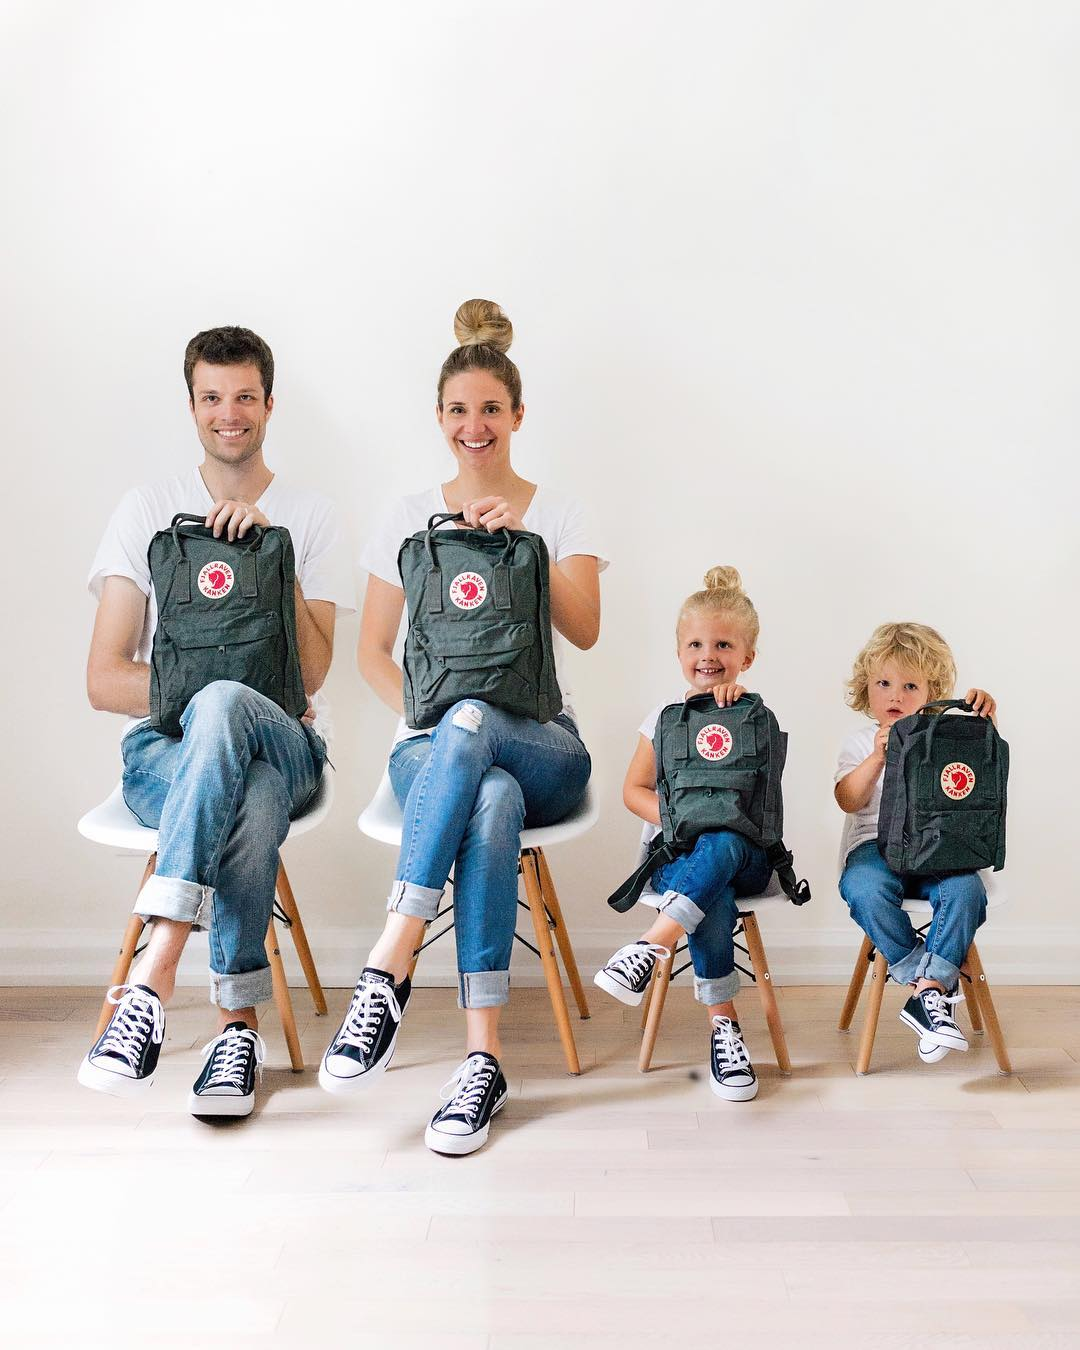 b91d22c1a Matching family Fjallraven backpacks and converse shoes | Happy Grey Lucky